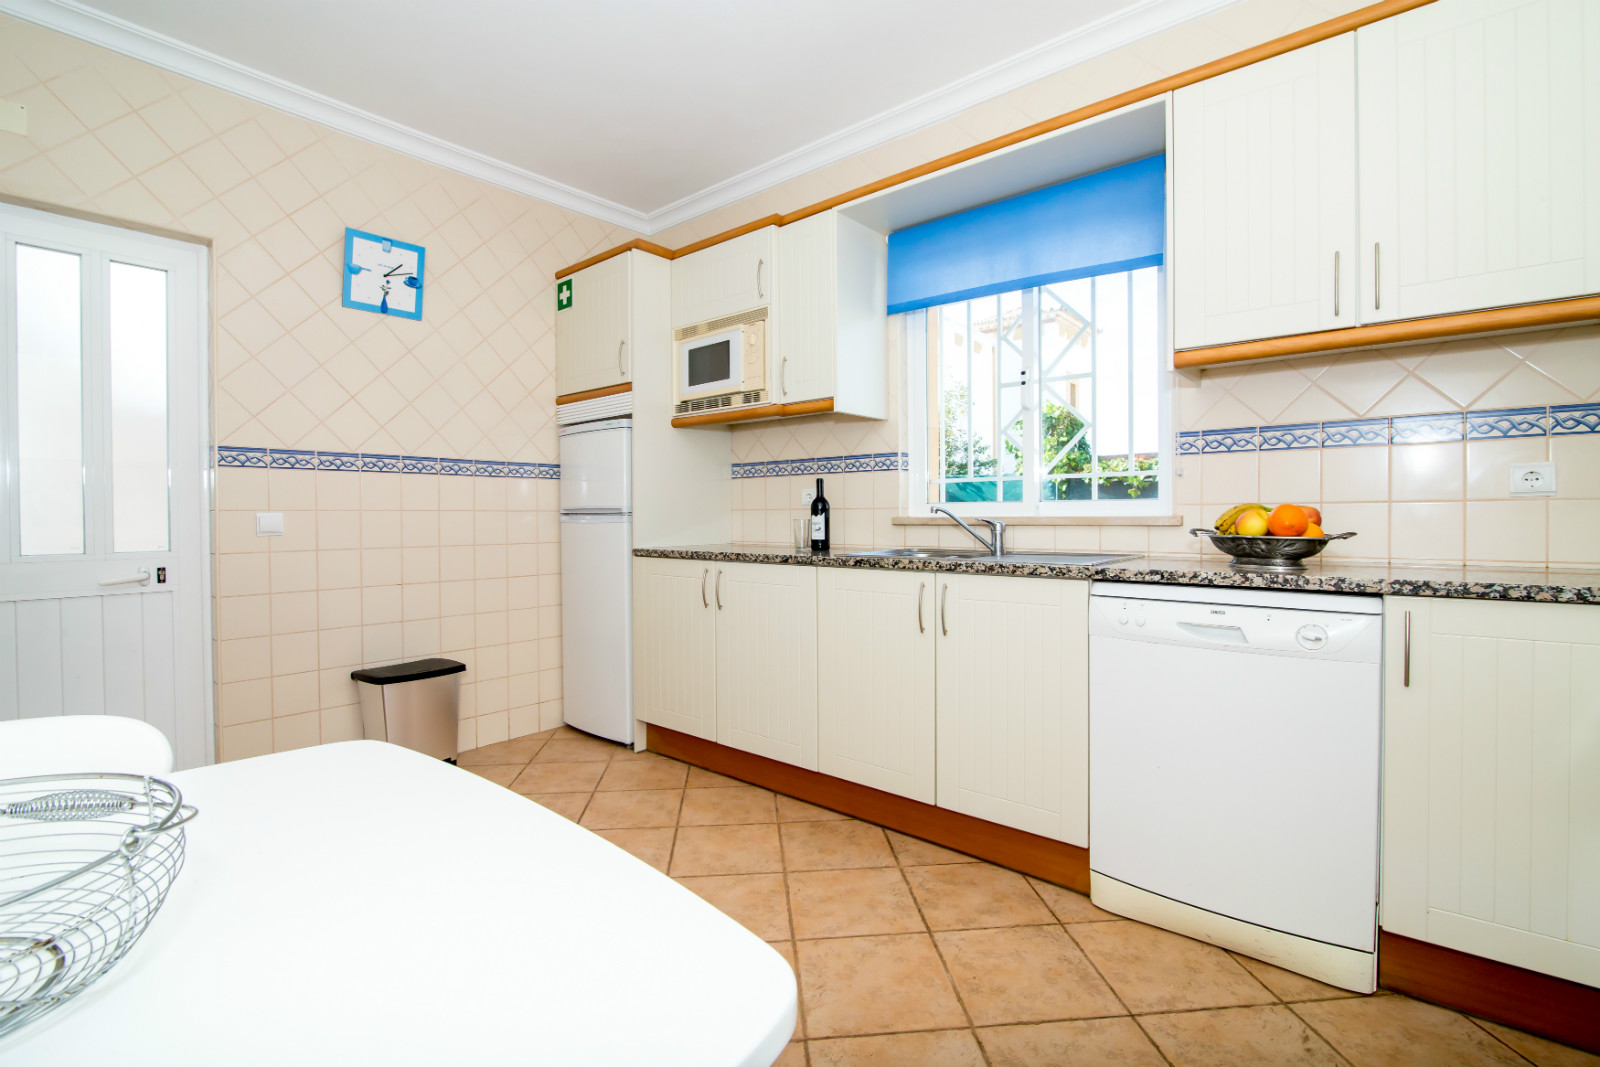 The beautifully & fully equipped kitchen also has table & chairs & door to pool.